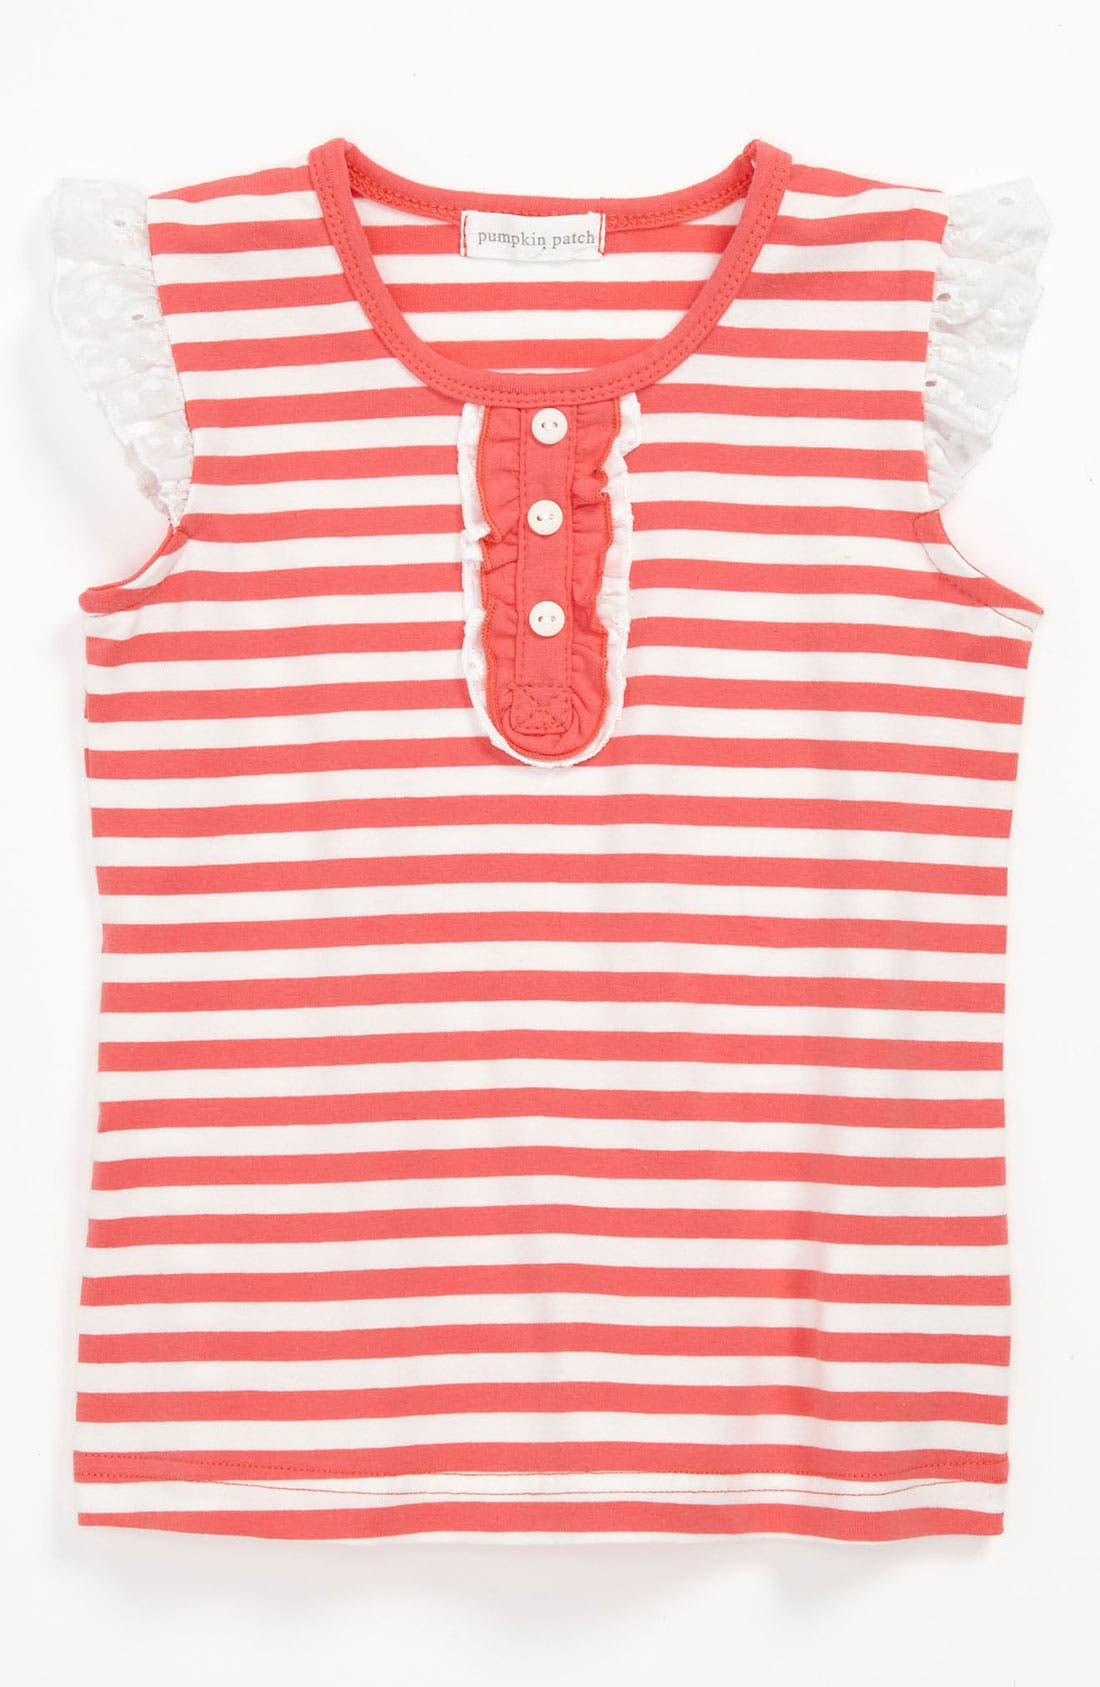 Alternate Image 1 Selected - Pumpkin Patch Skinny Stripe Top (Toddler)